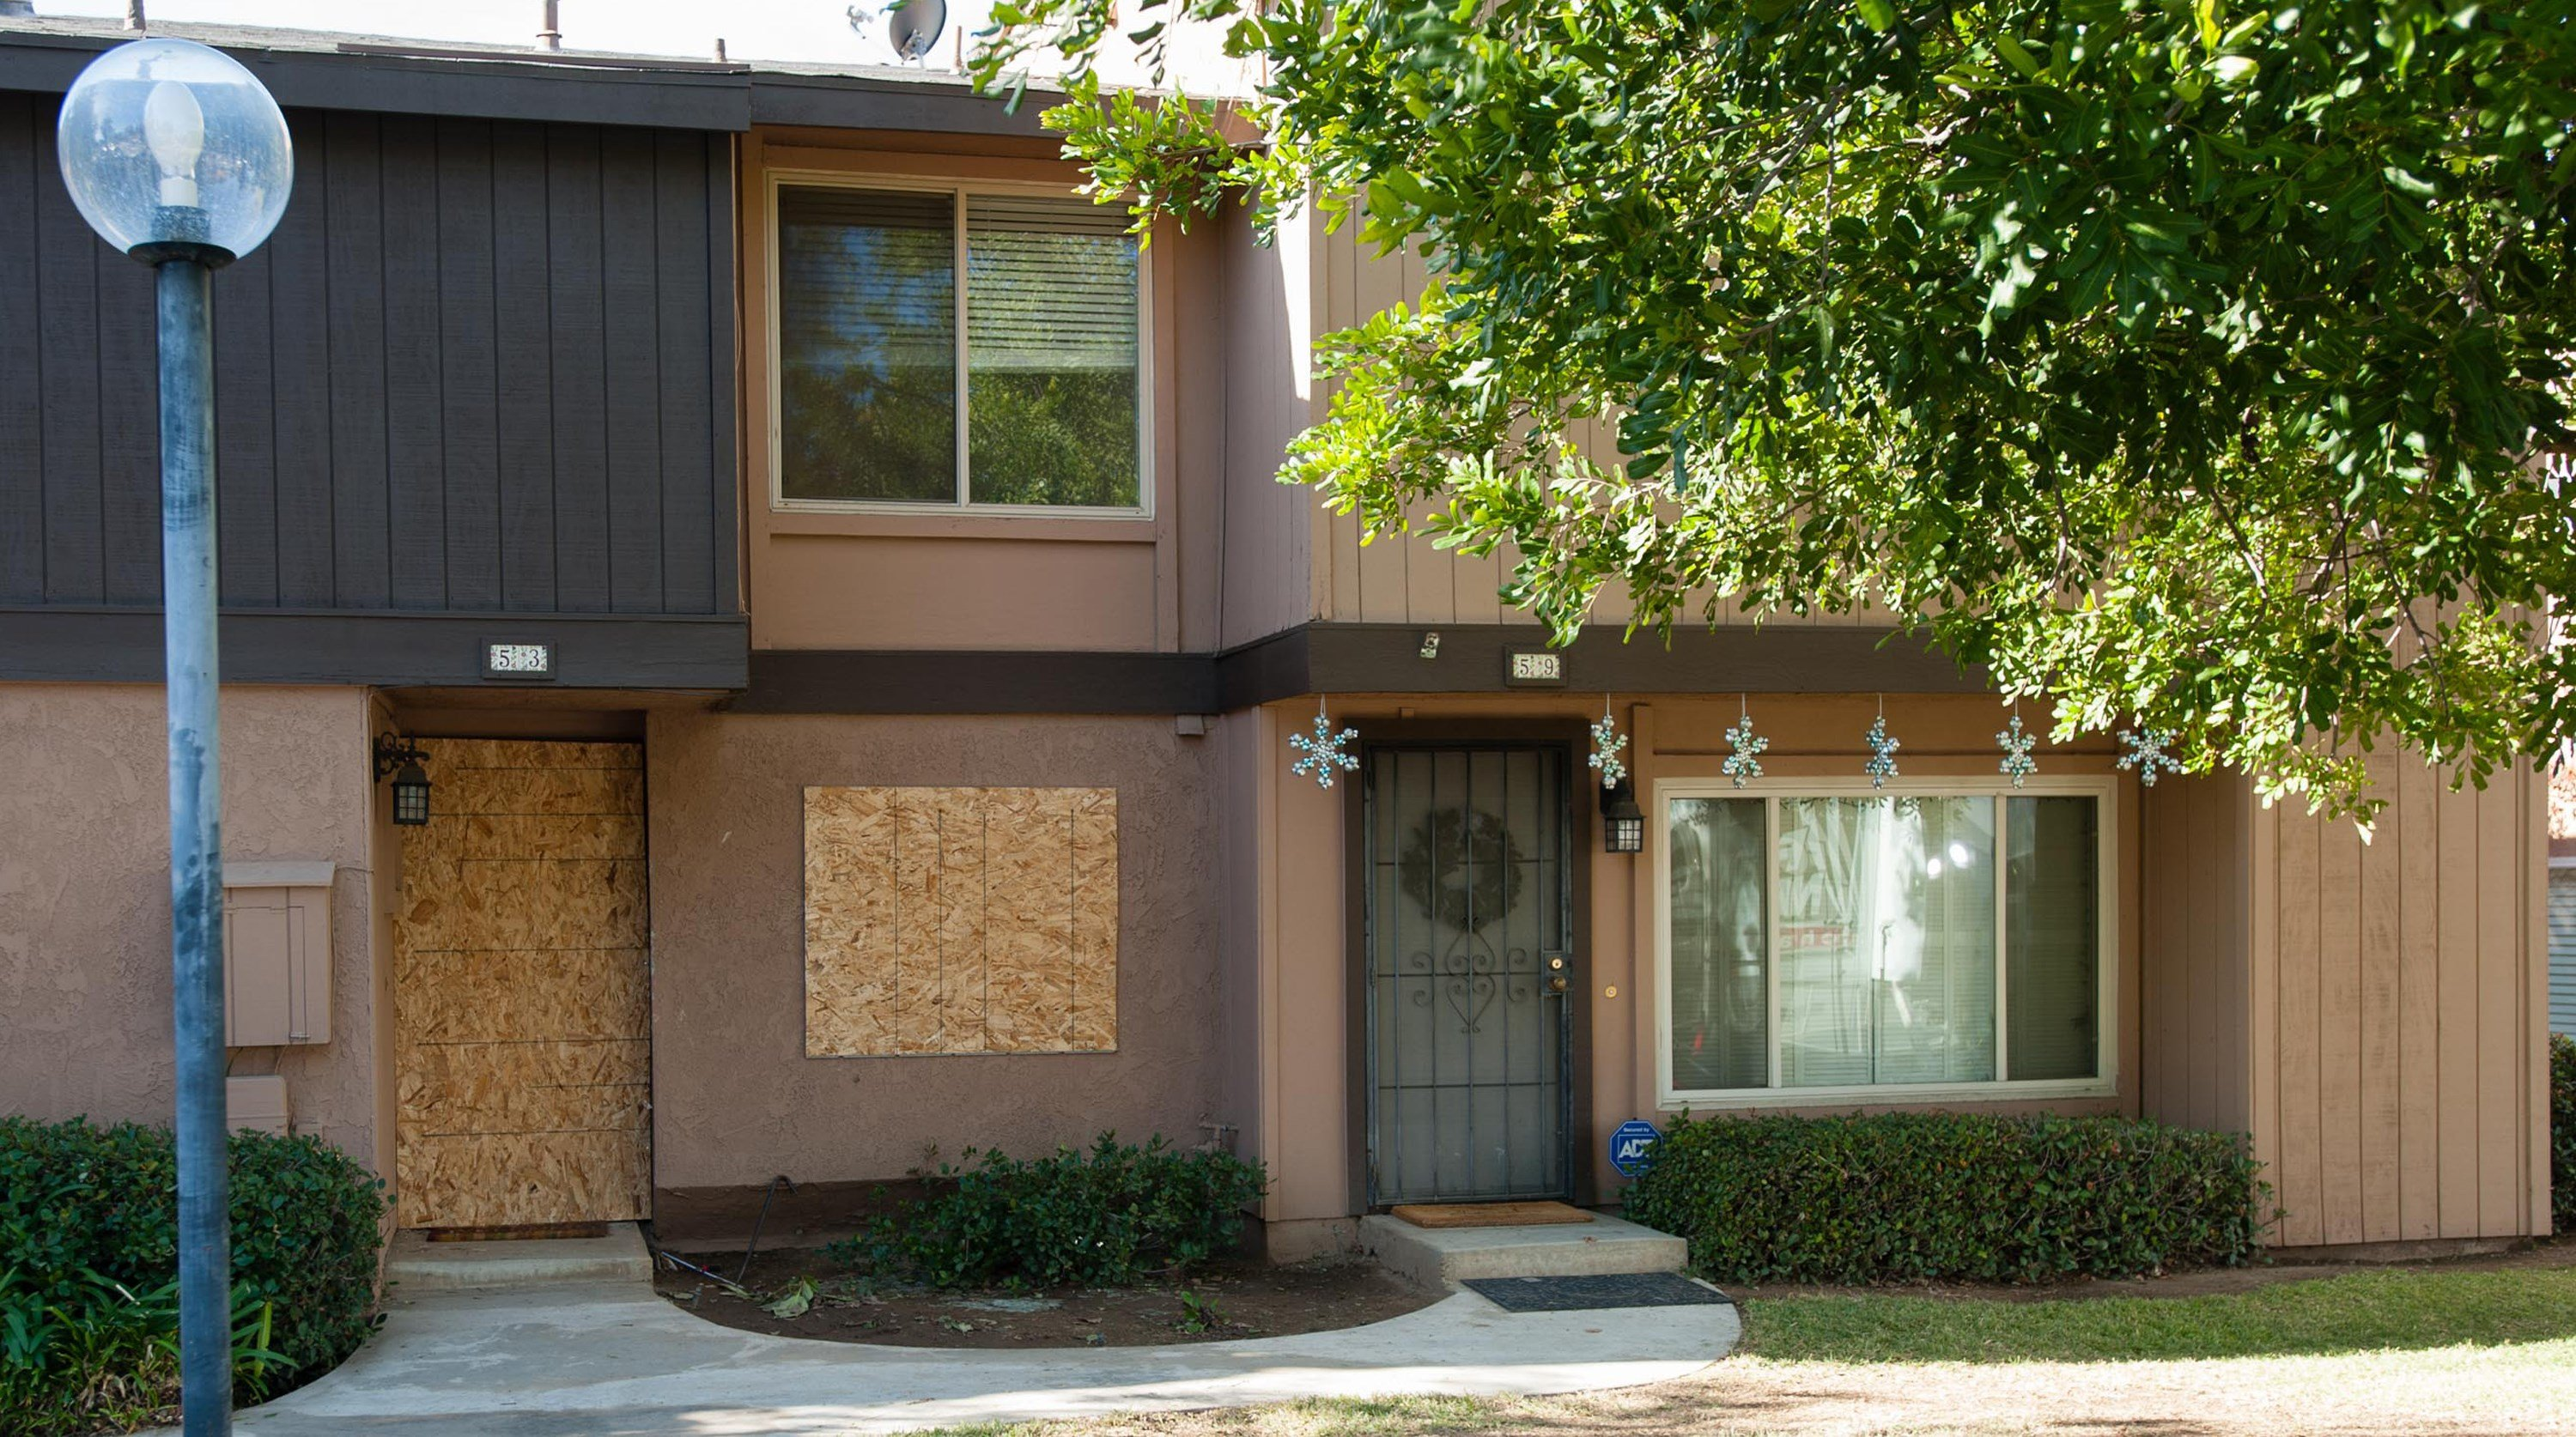 The rented Center Street townhouse of Syed Rizwan Farook and his wife, Tashfeen Malik, is boarded up as holiday decorations and a wreath adorn a neighboring residence on December 5, 2015, in Redlands, CA.